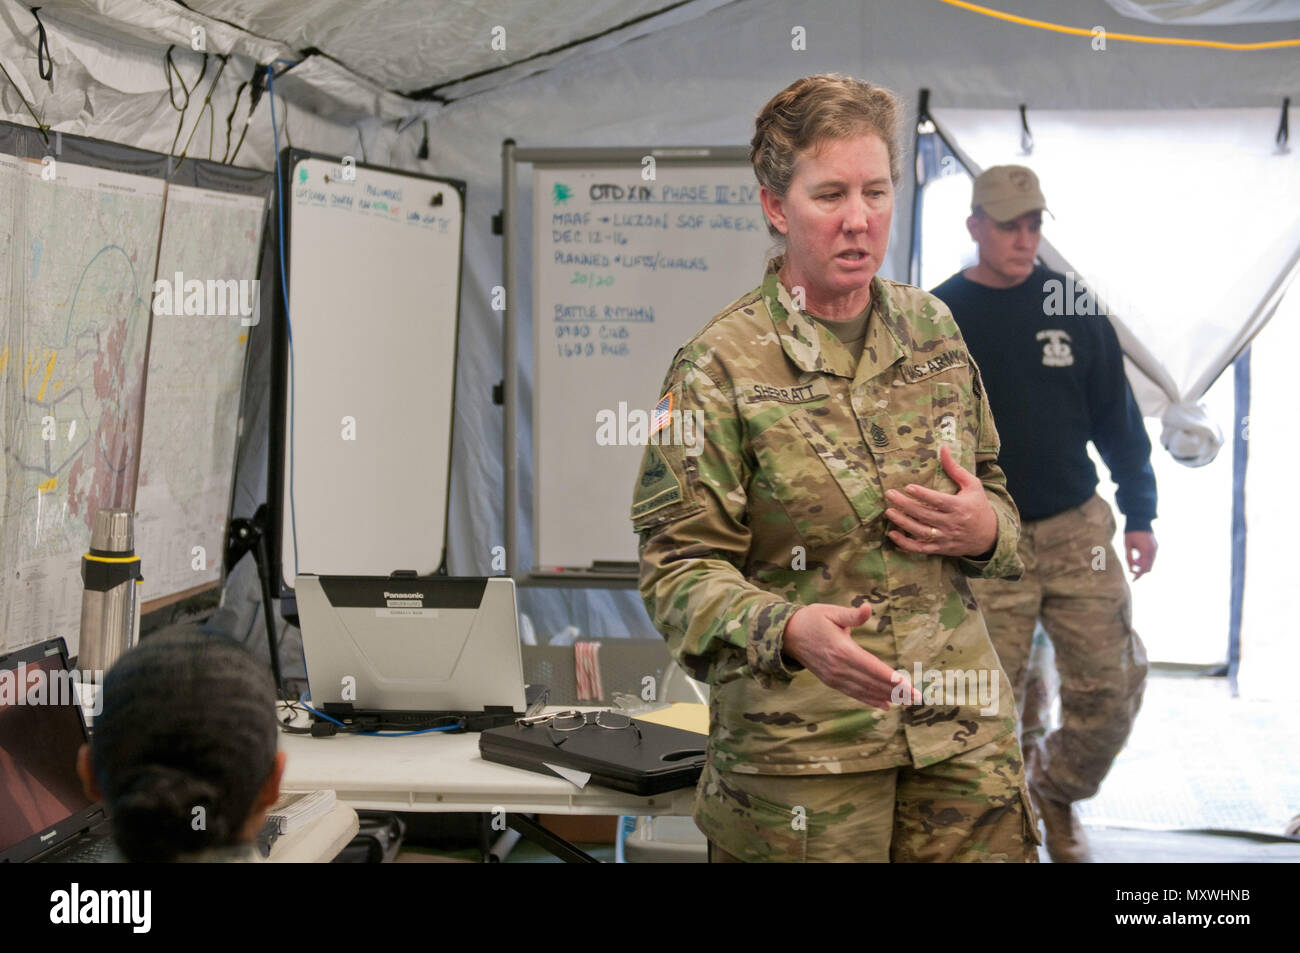 FORT BRAGG, North Carolina-- Sgt. Maj. Carolyn L. Sherratt briefs the Tactical Operations Center at Mackall Army Air Field on operation updates, Dec 12. The TOC is the head of mission control for Operation Toy Drop XIX. - Stock Image